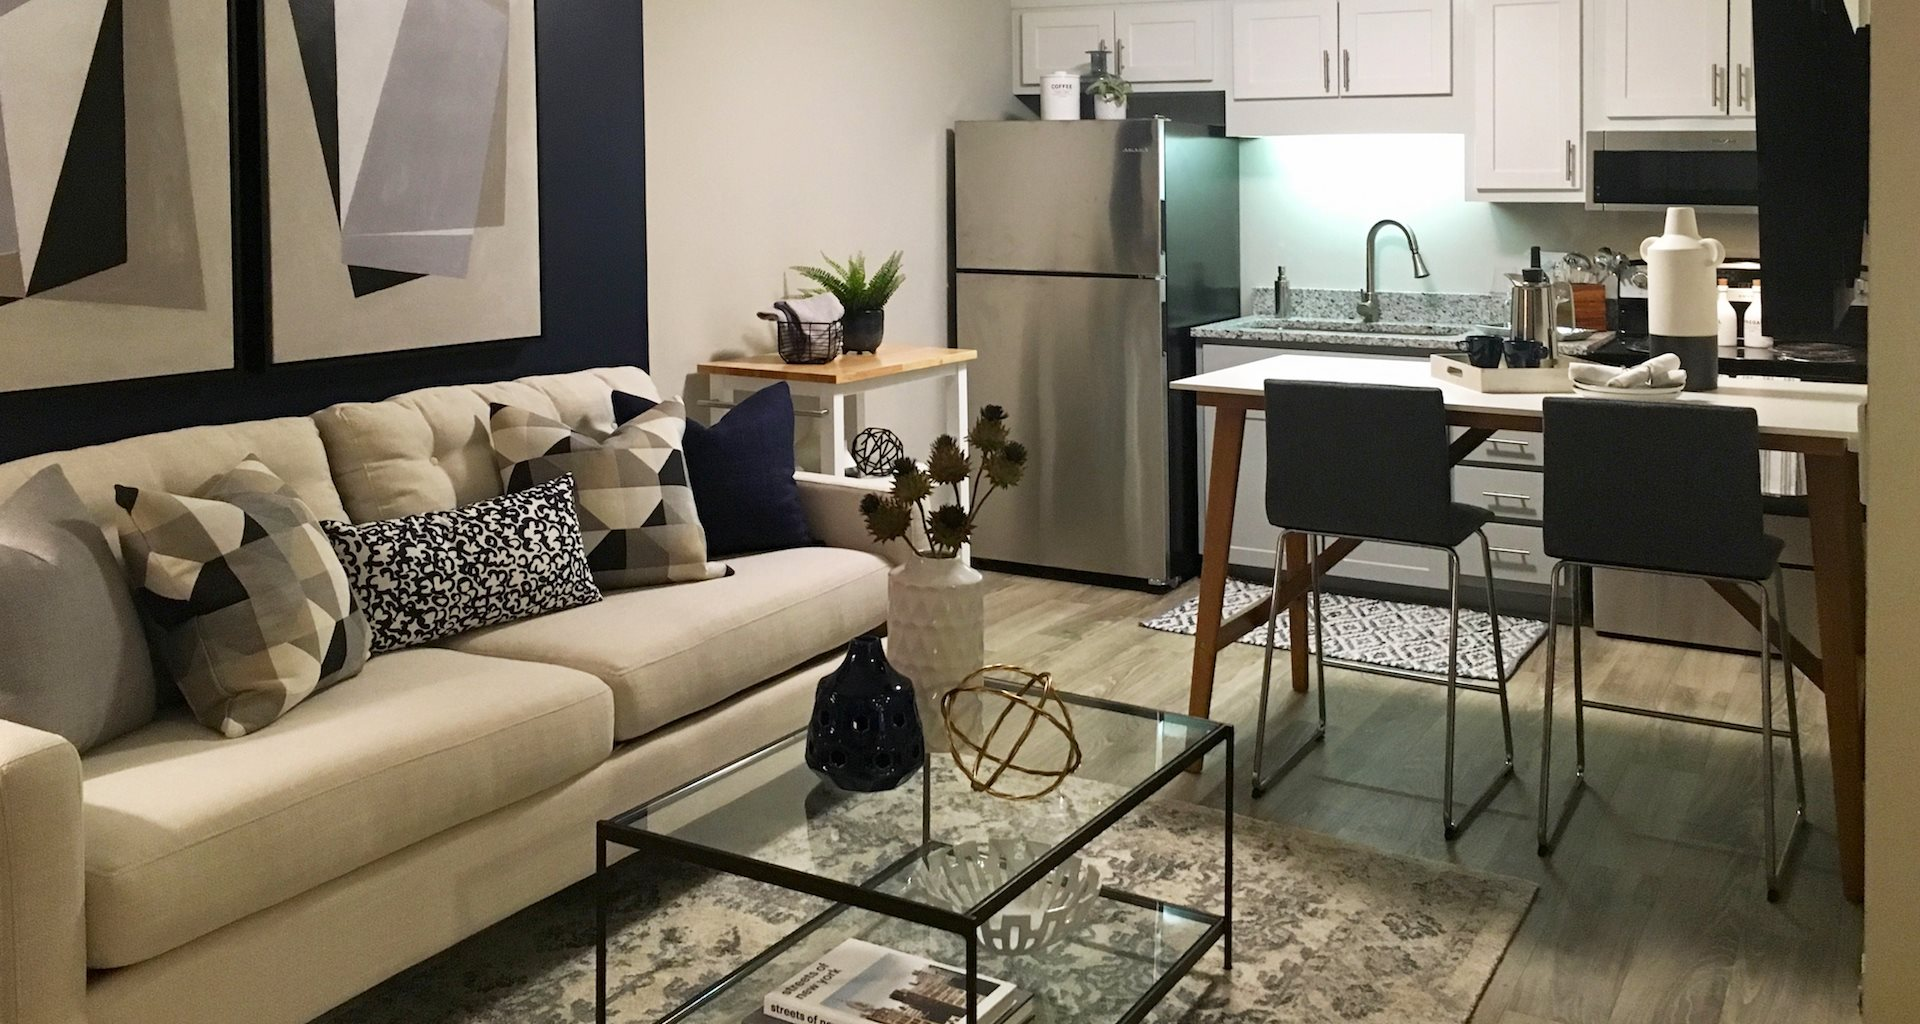 Tara Garden Apartments in Huntsville, Al upgraded studio apartment